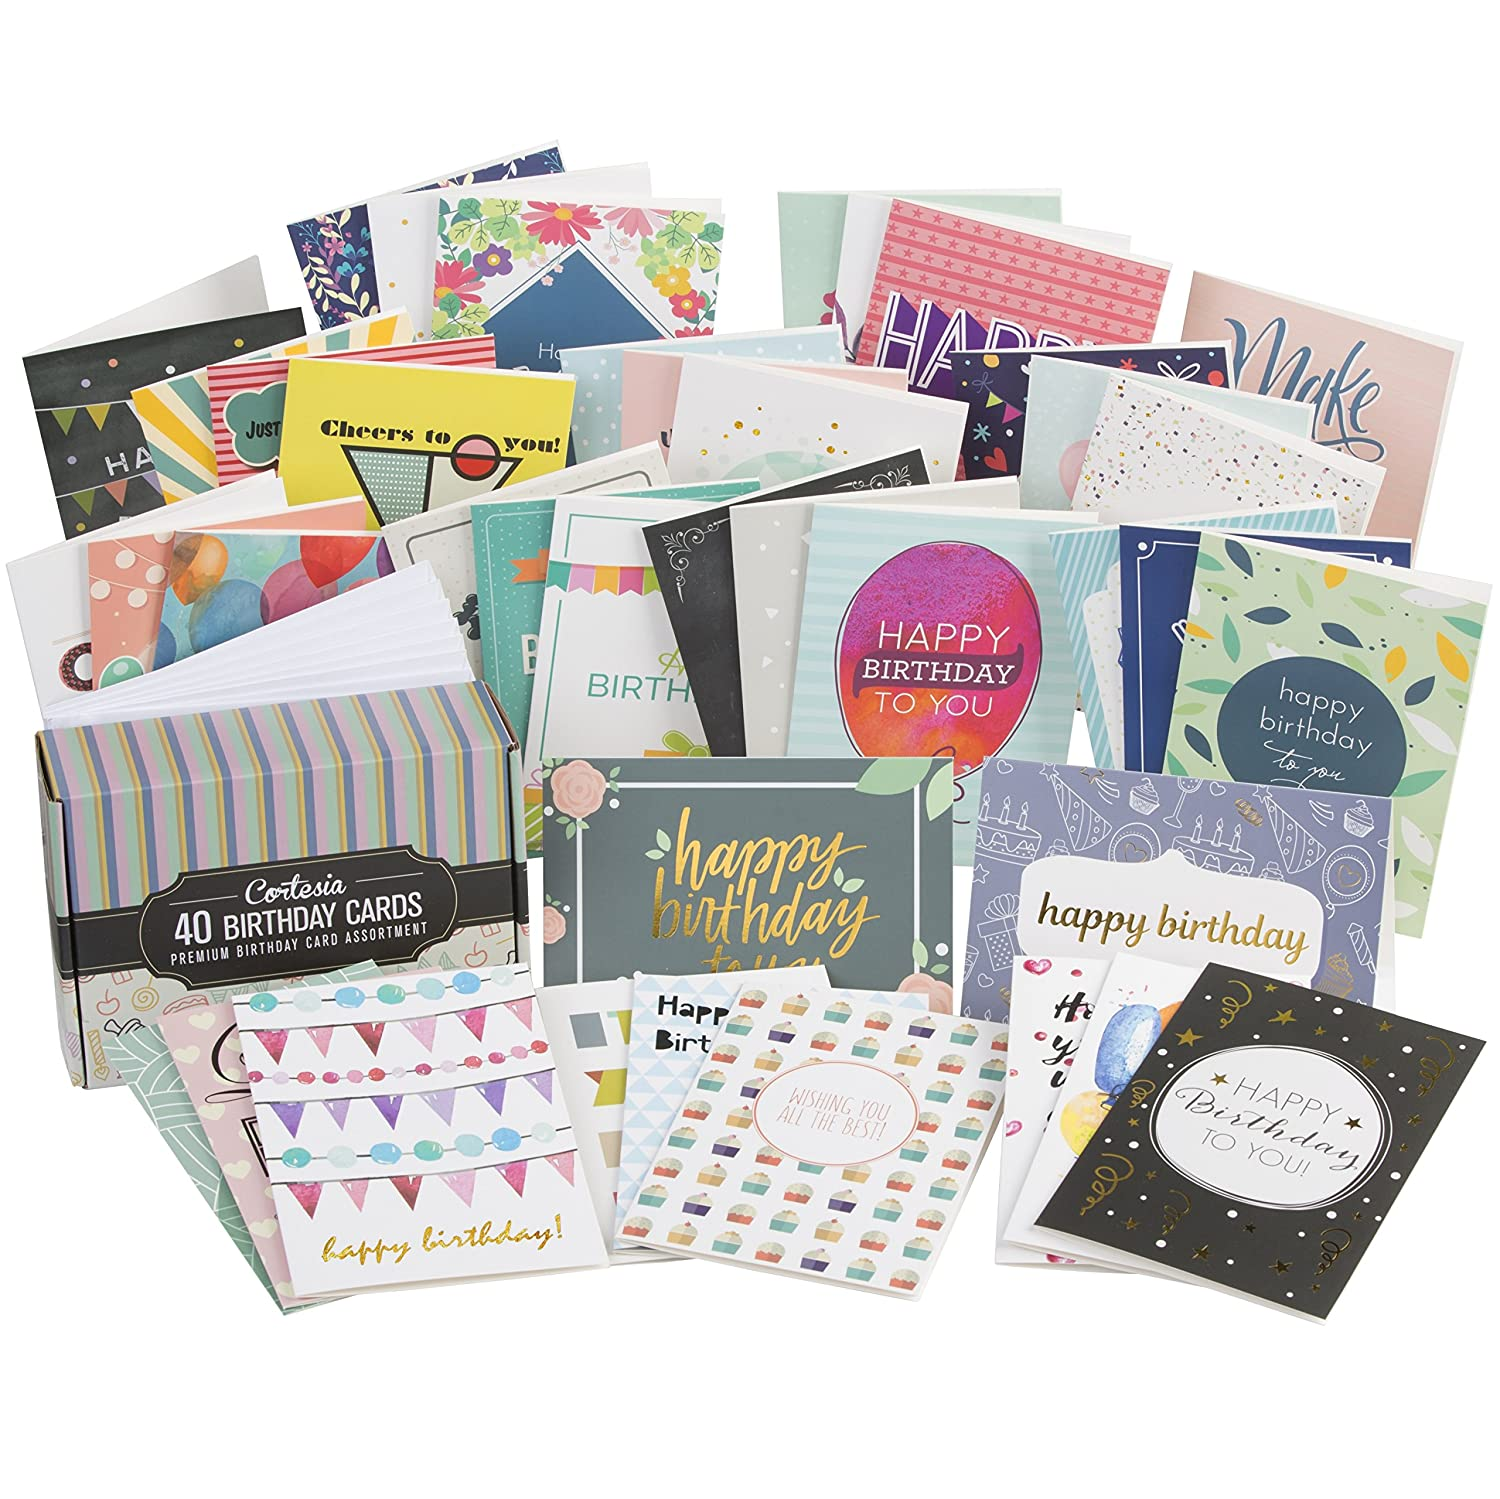 Amazon Cortesia Box Set of 40 Assorted Birthday Cards – Birthday Card with Pictures